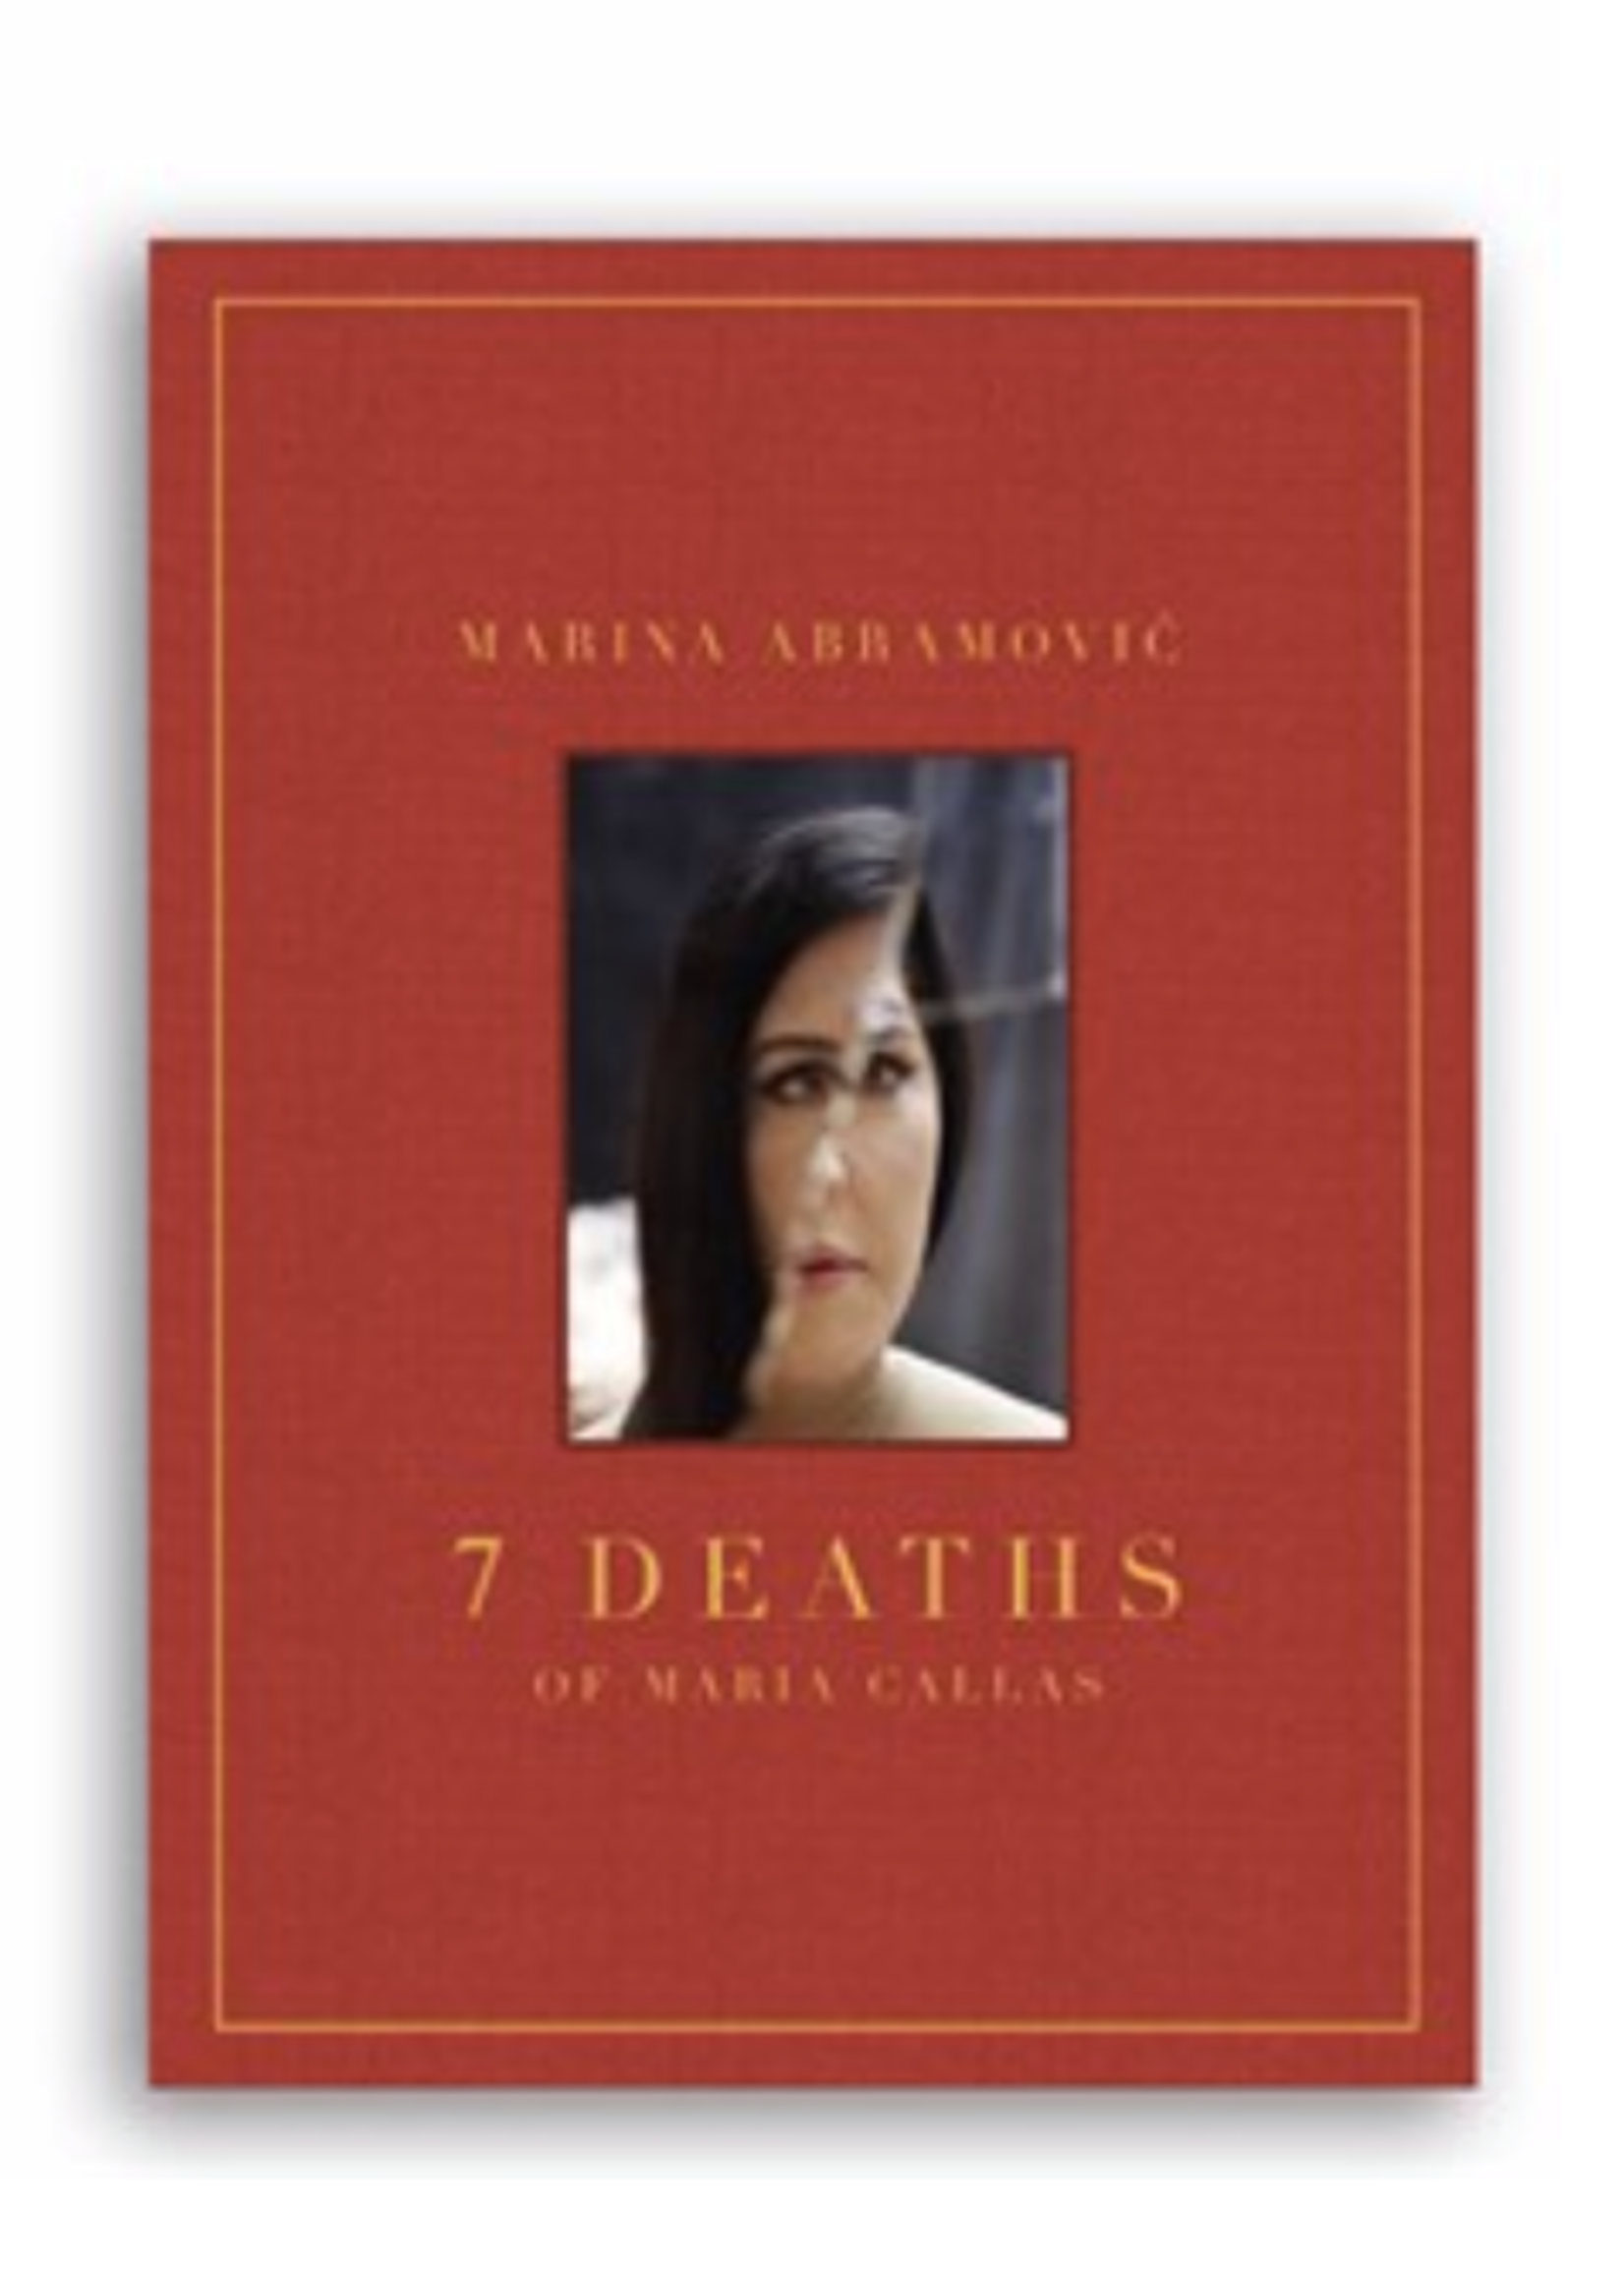 Marina Abramović:  7 Deaths of Maria Callas